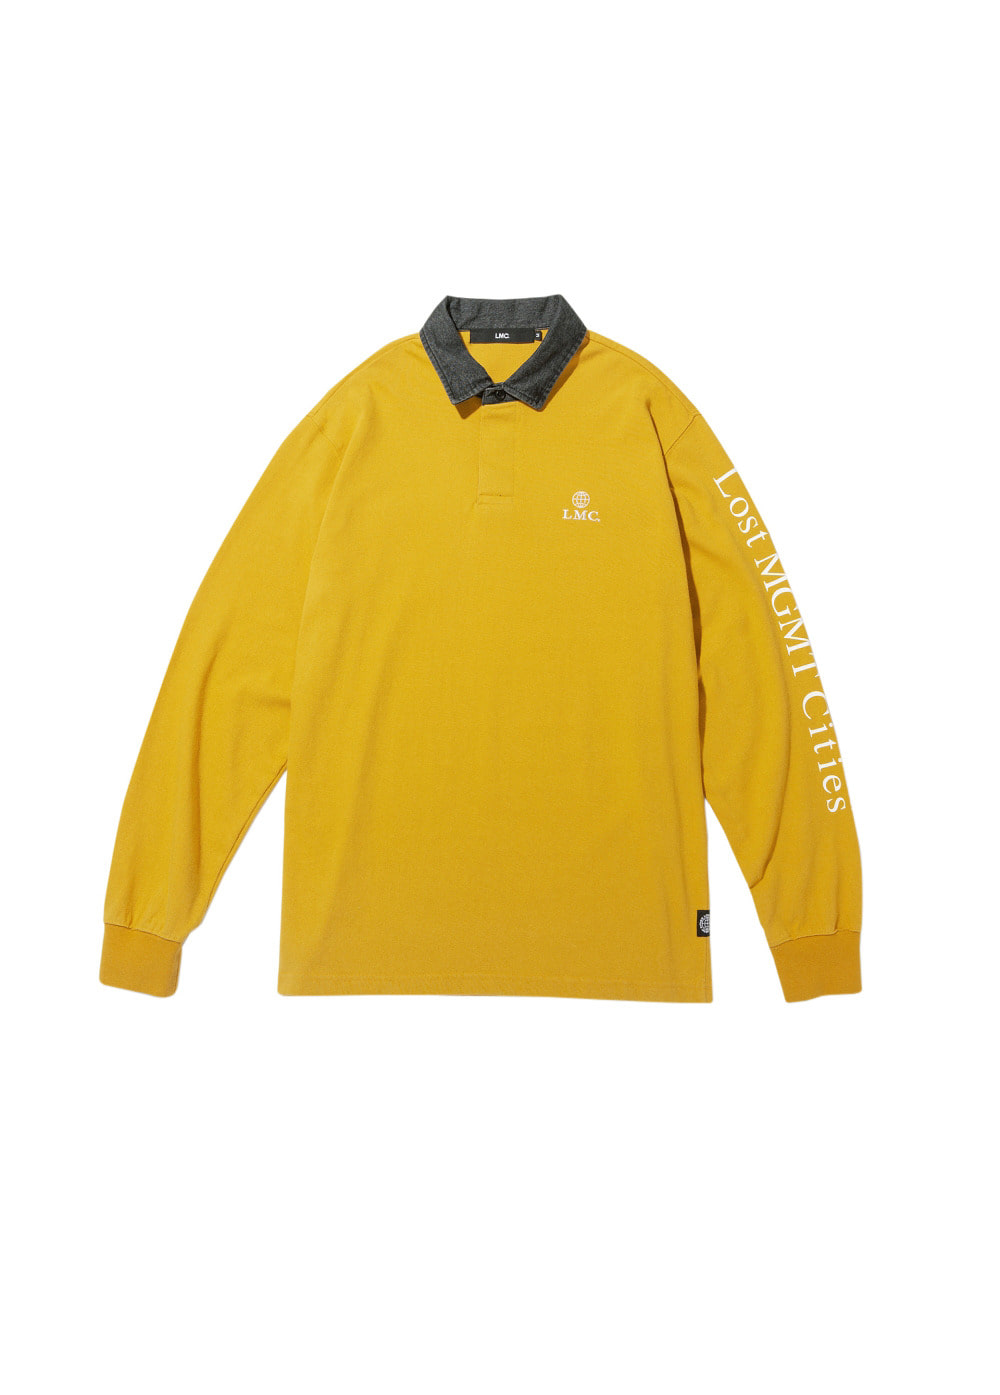 LMC DENIM COLLAR RUGBY LONG SLV TEE yellow